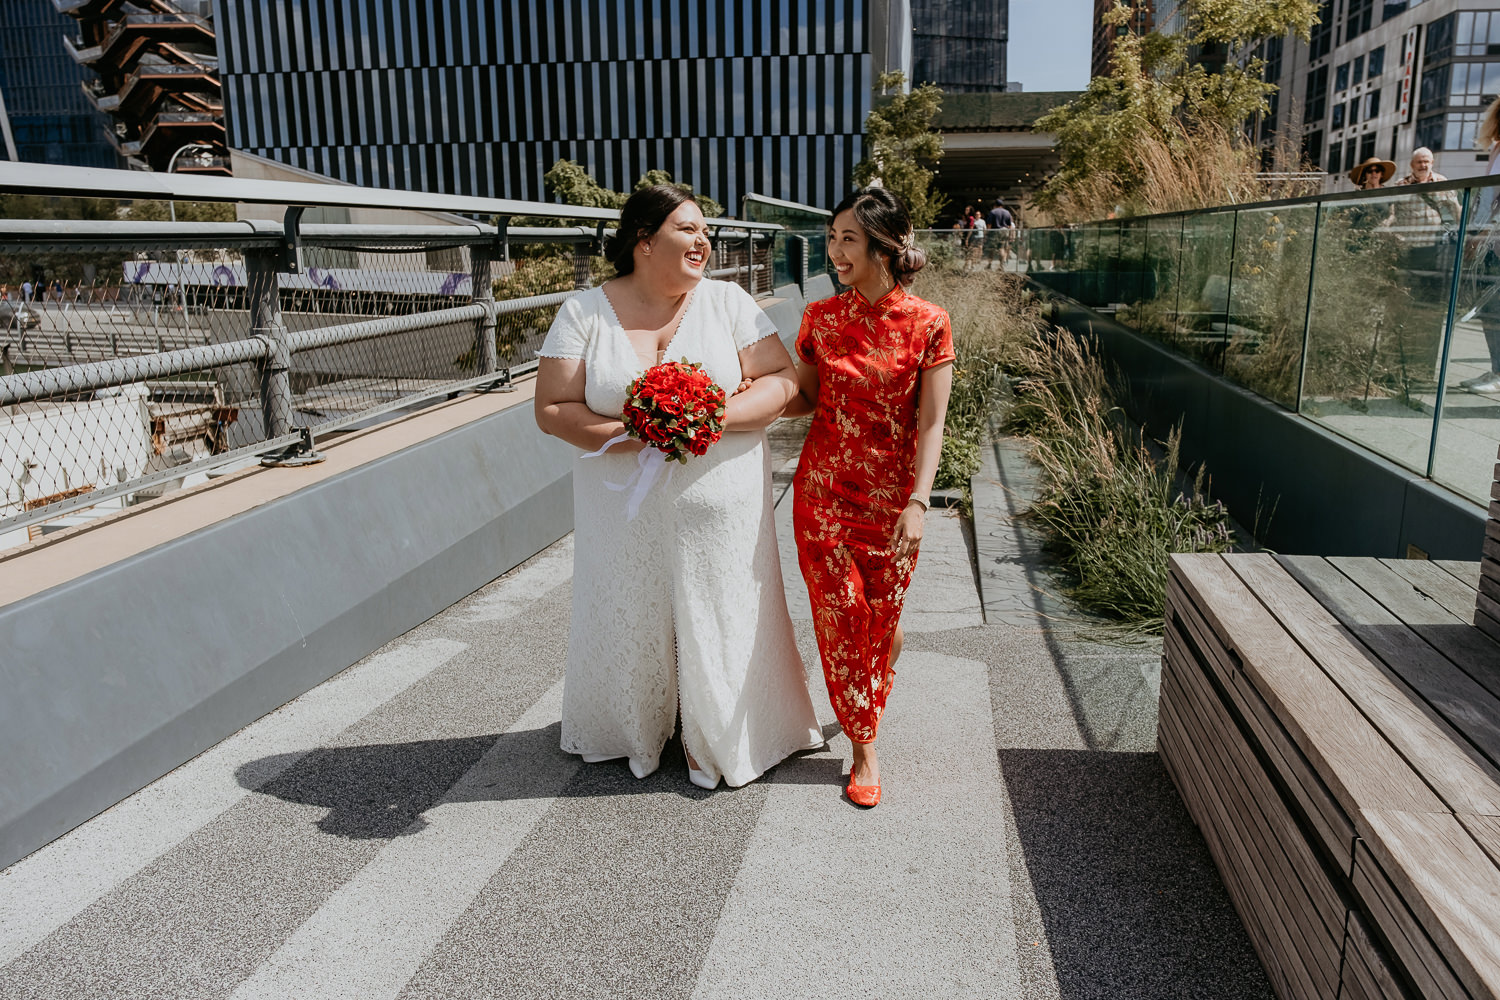 two brides walking and smiling at each other, their arms connected